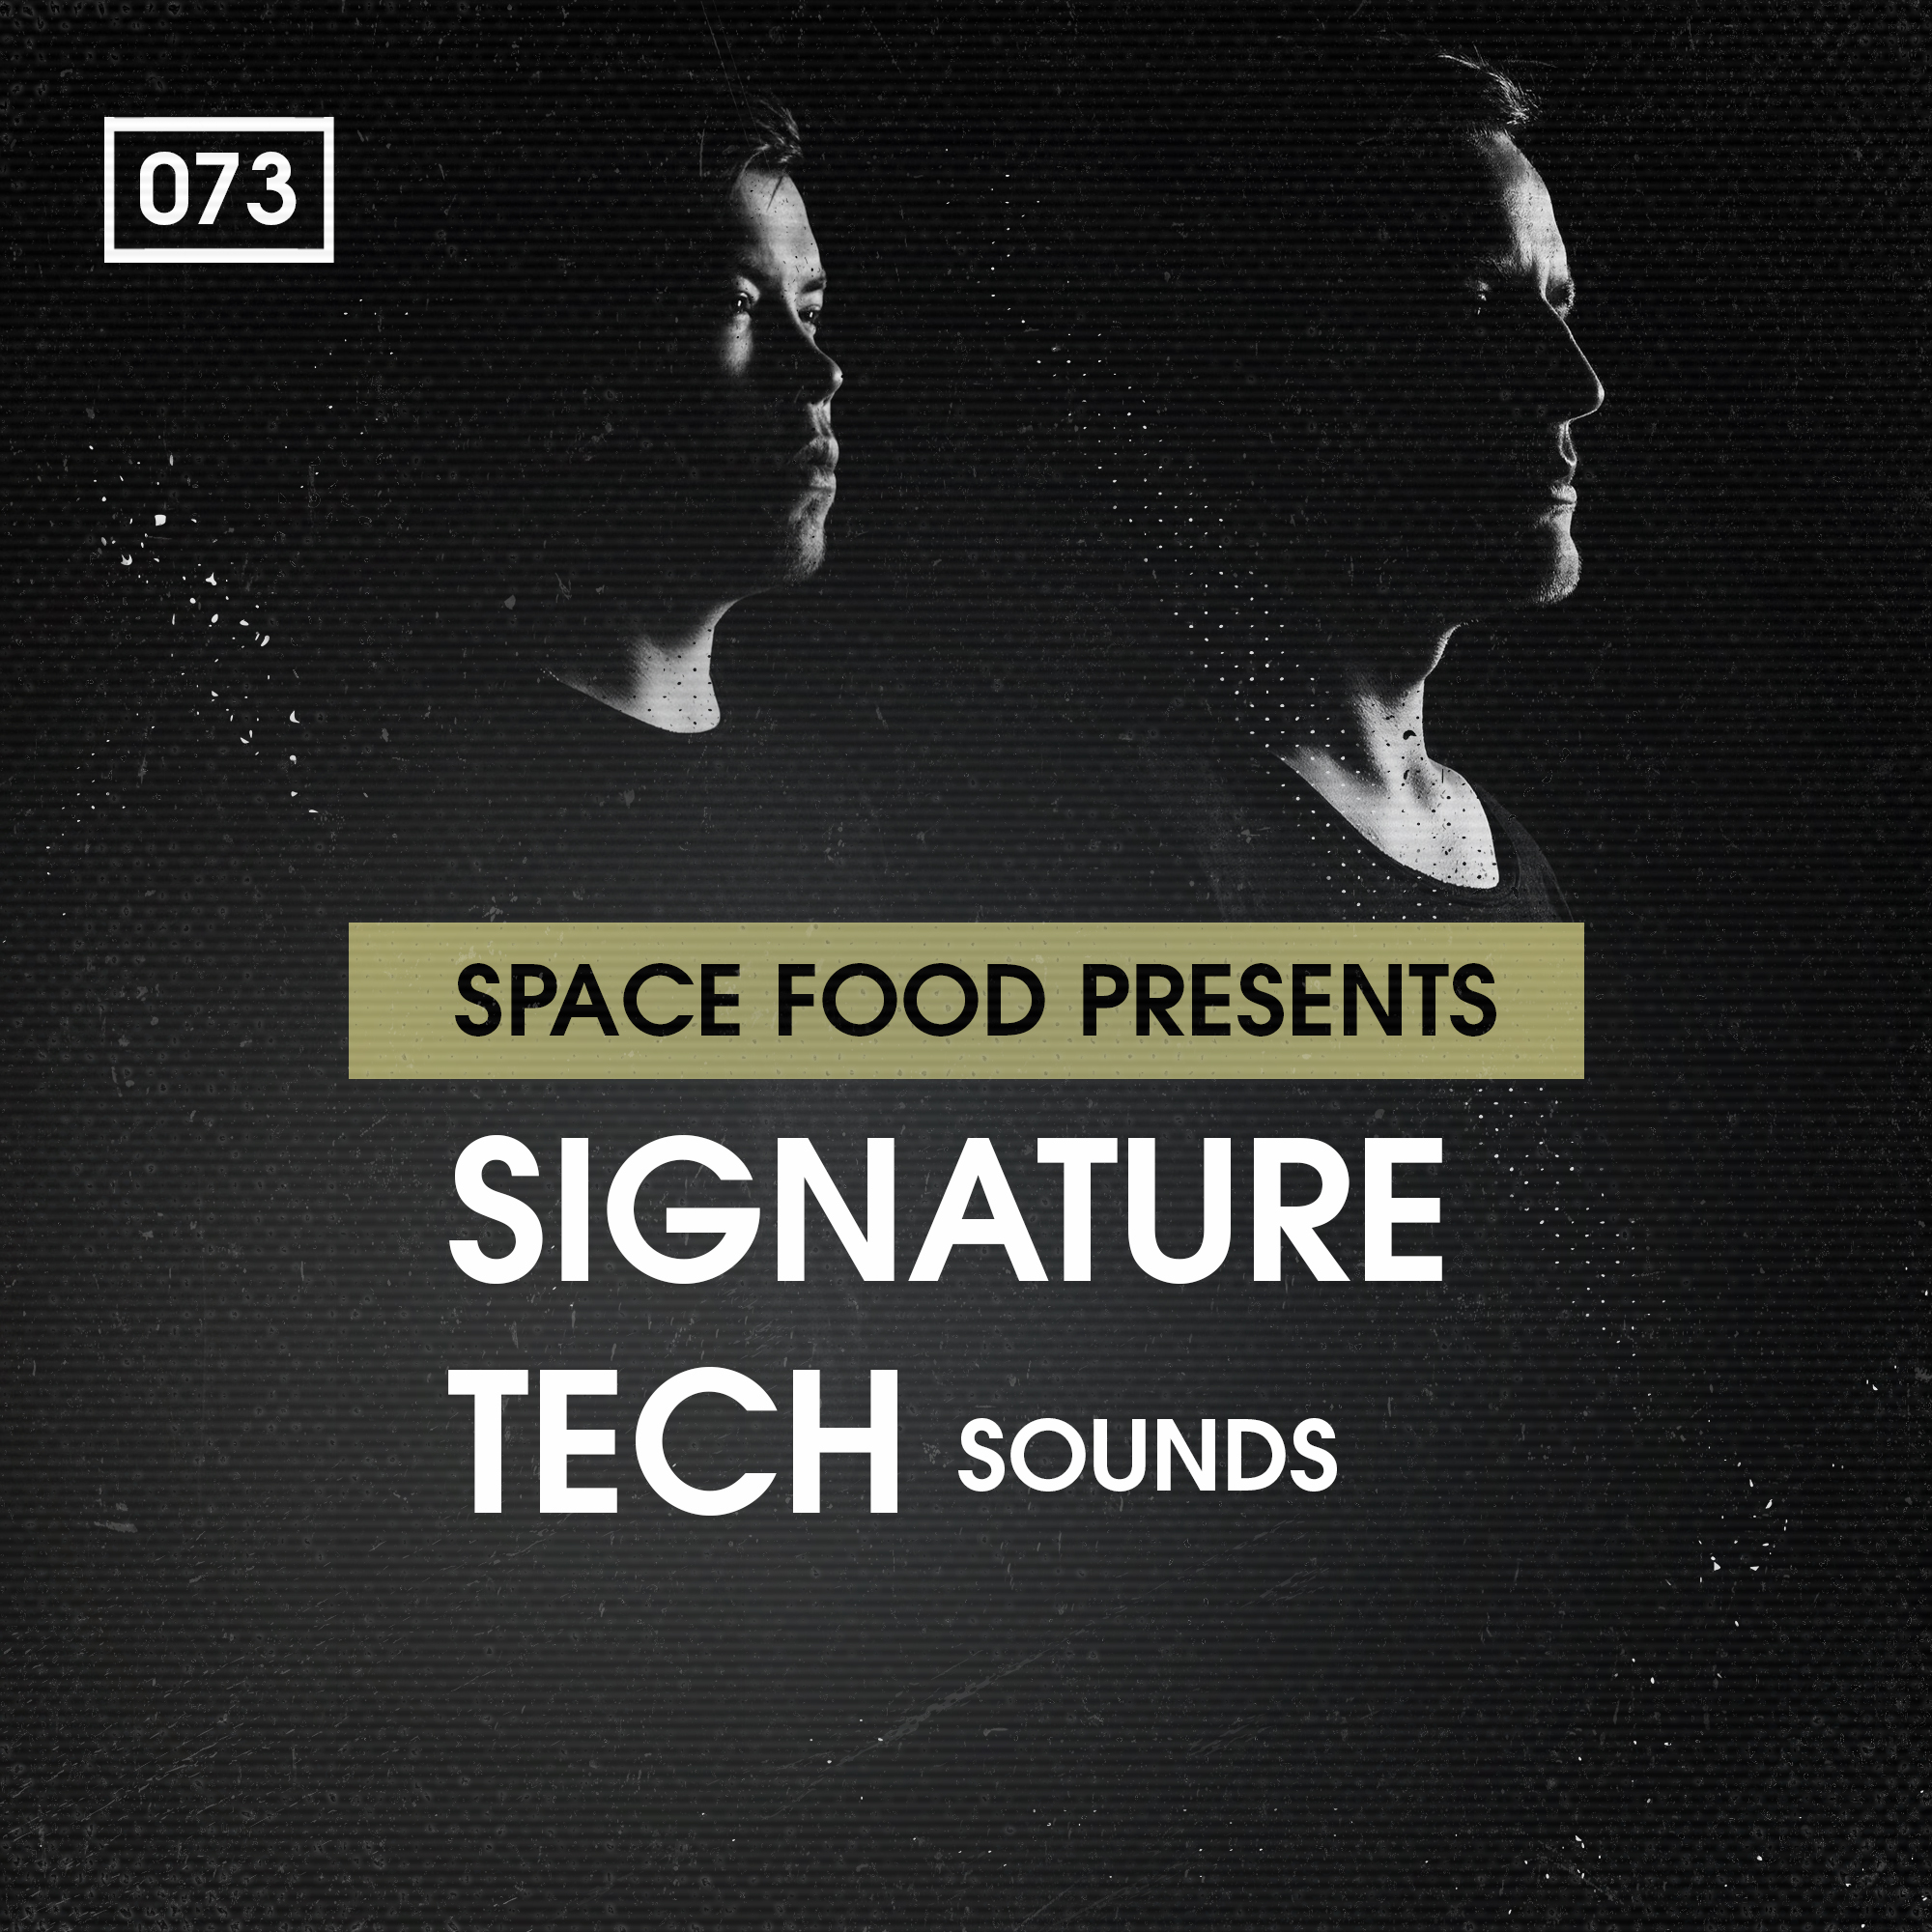 Bingoshakerz Space Food Presents: Signature Tech Sounds